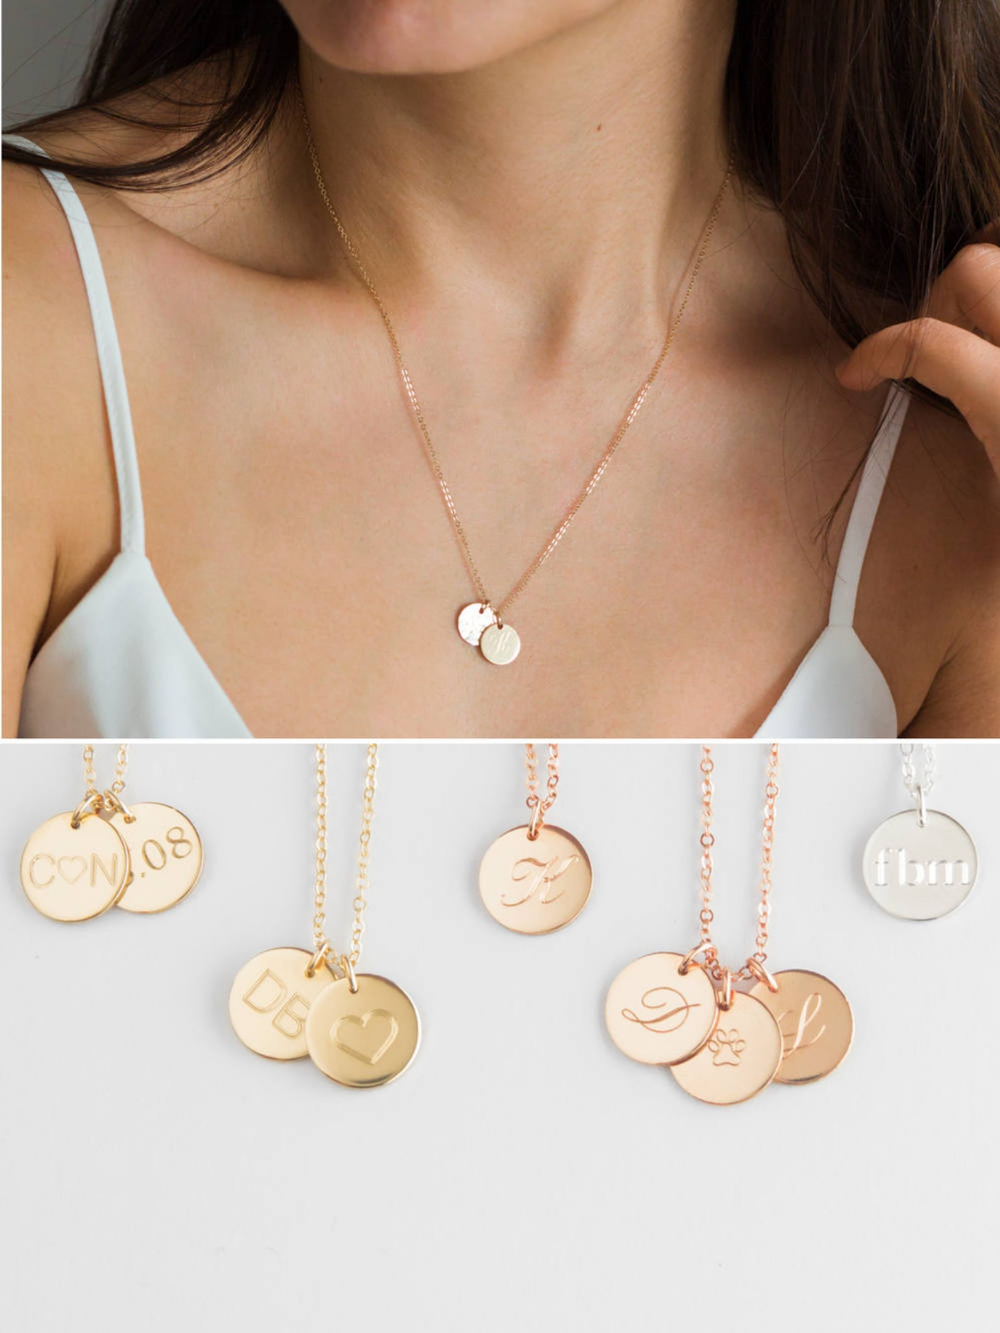 Two Initial Necklace Double Initial Necklace 2 Initial Etsy Initial Necklace Dainty Gold Necklace Star Charm Necklace